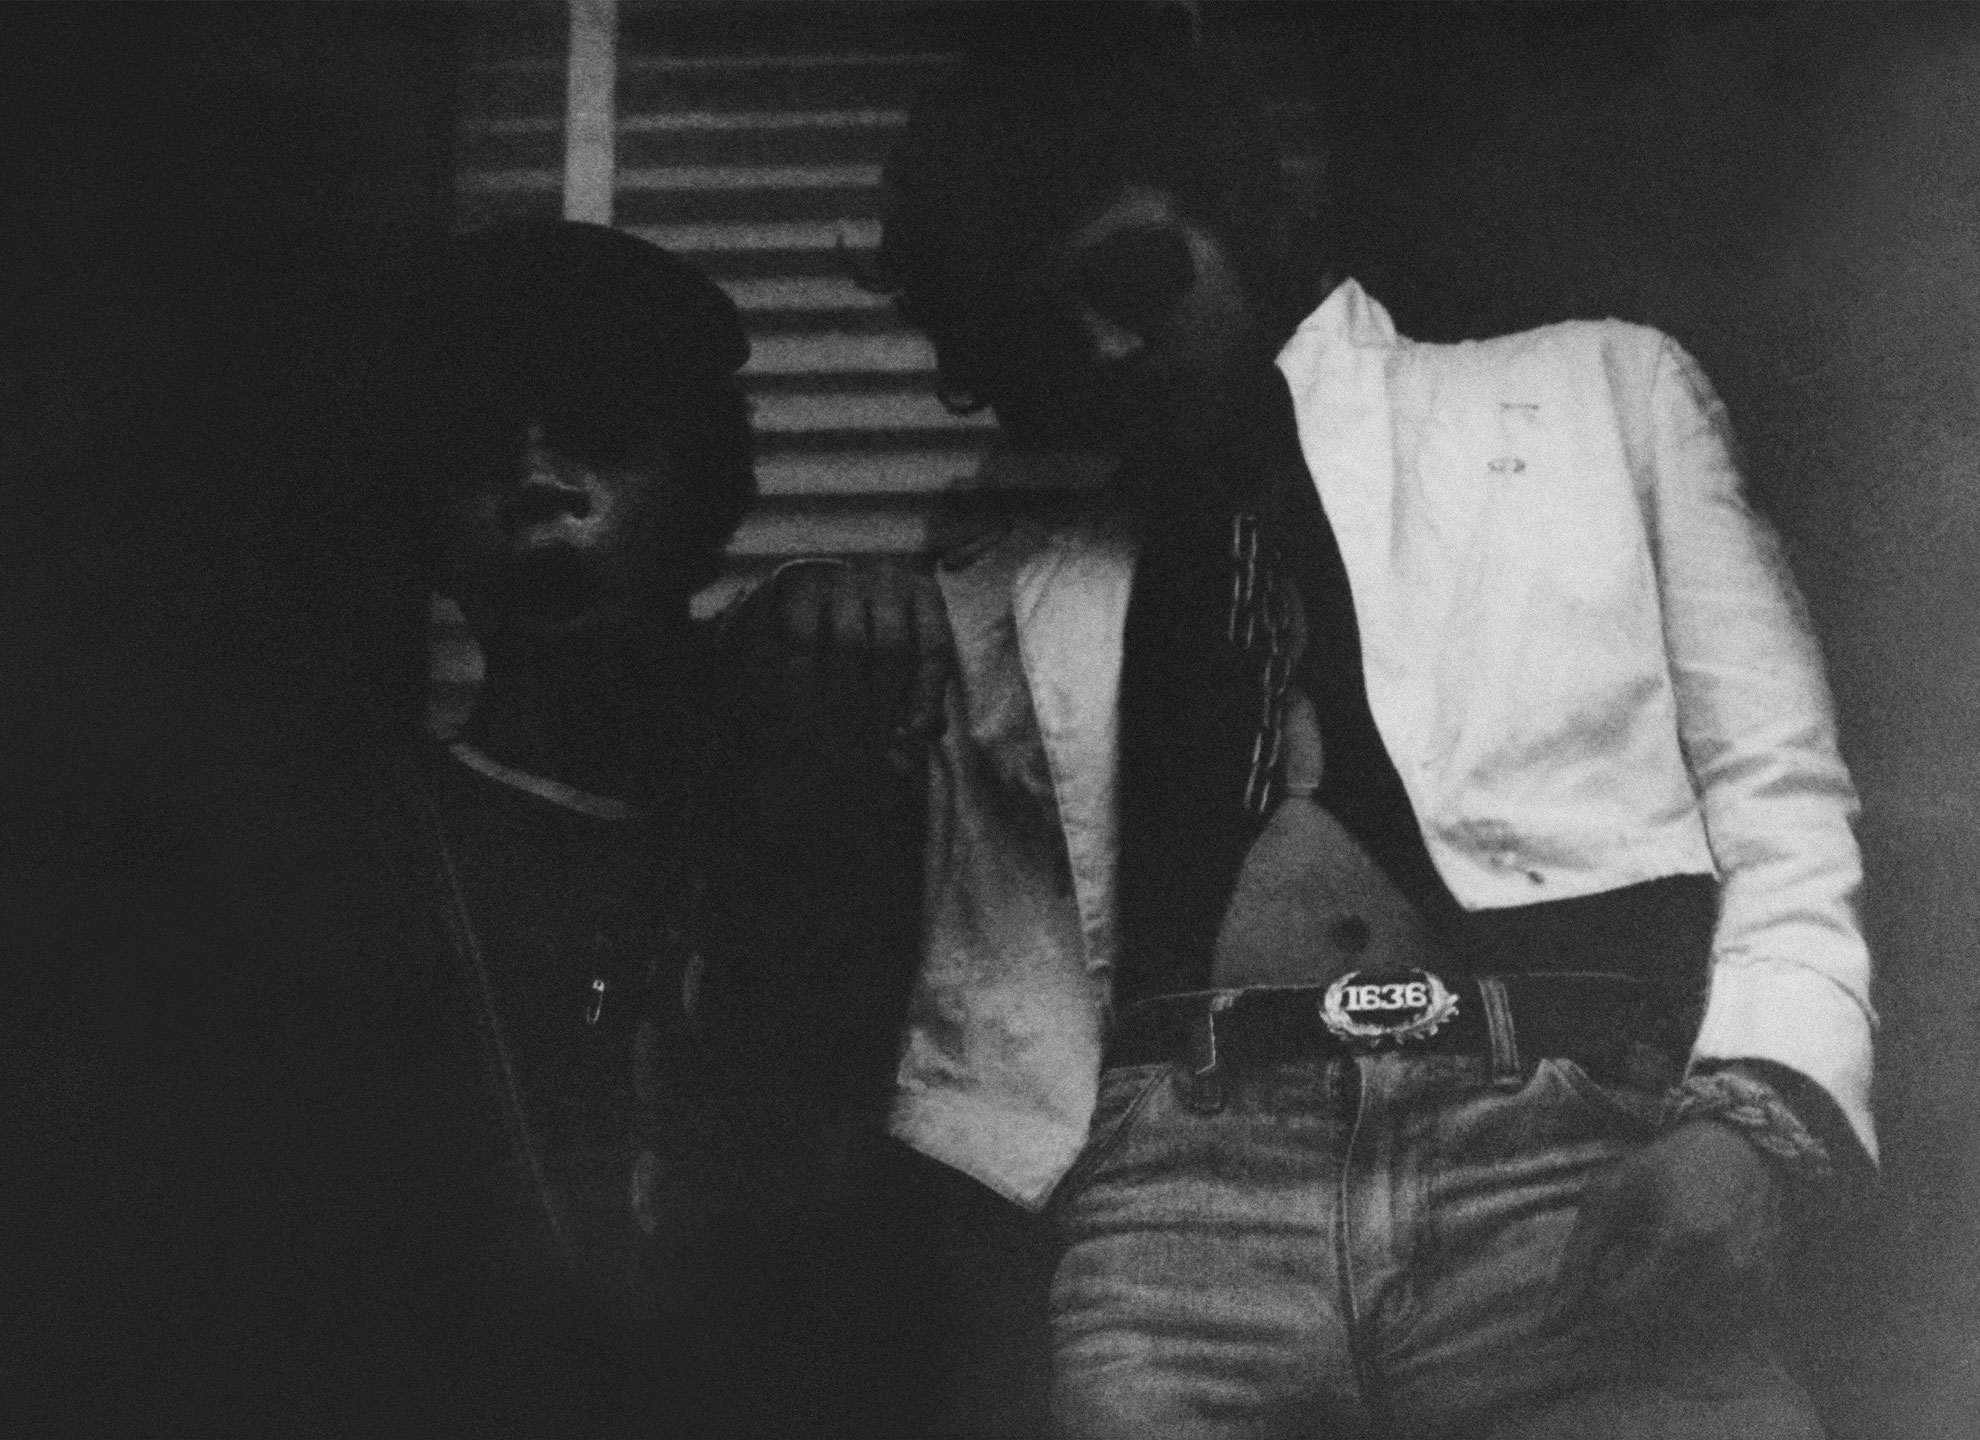 SAMO©… Jean-Michel Basquiat and Al Diaz, previously unpublished - one of only a few known images of the infamous duo together. Courtesy of House of Roulx